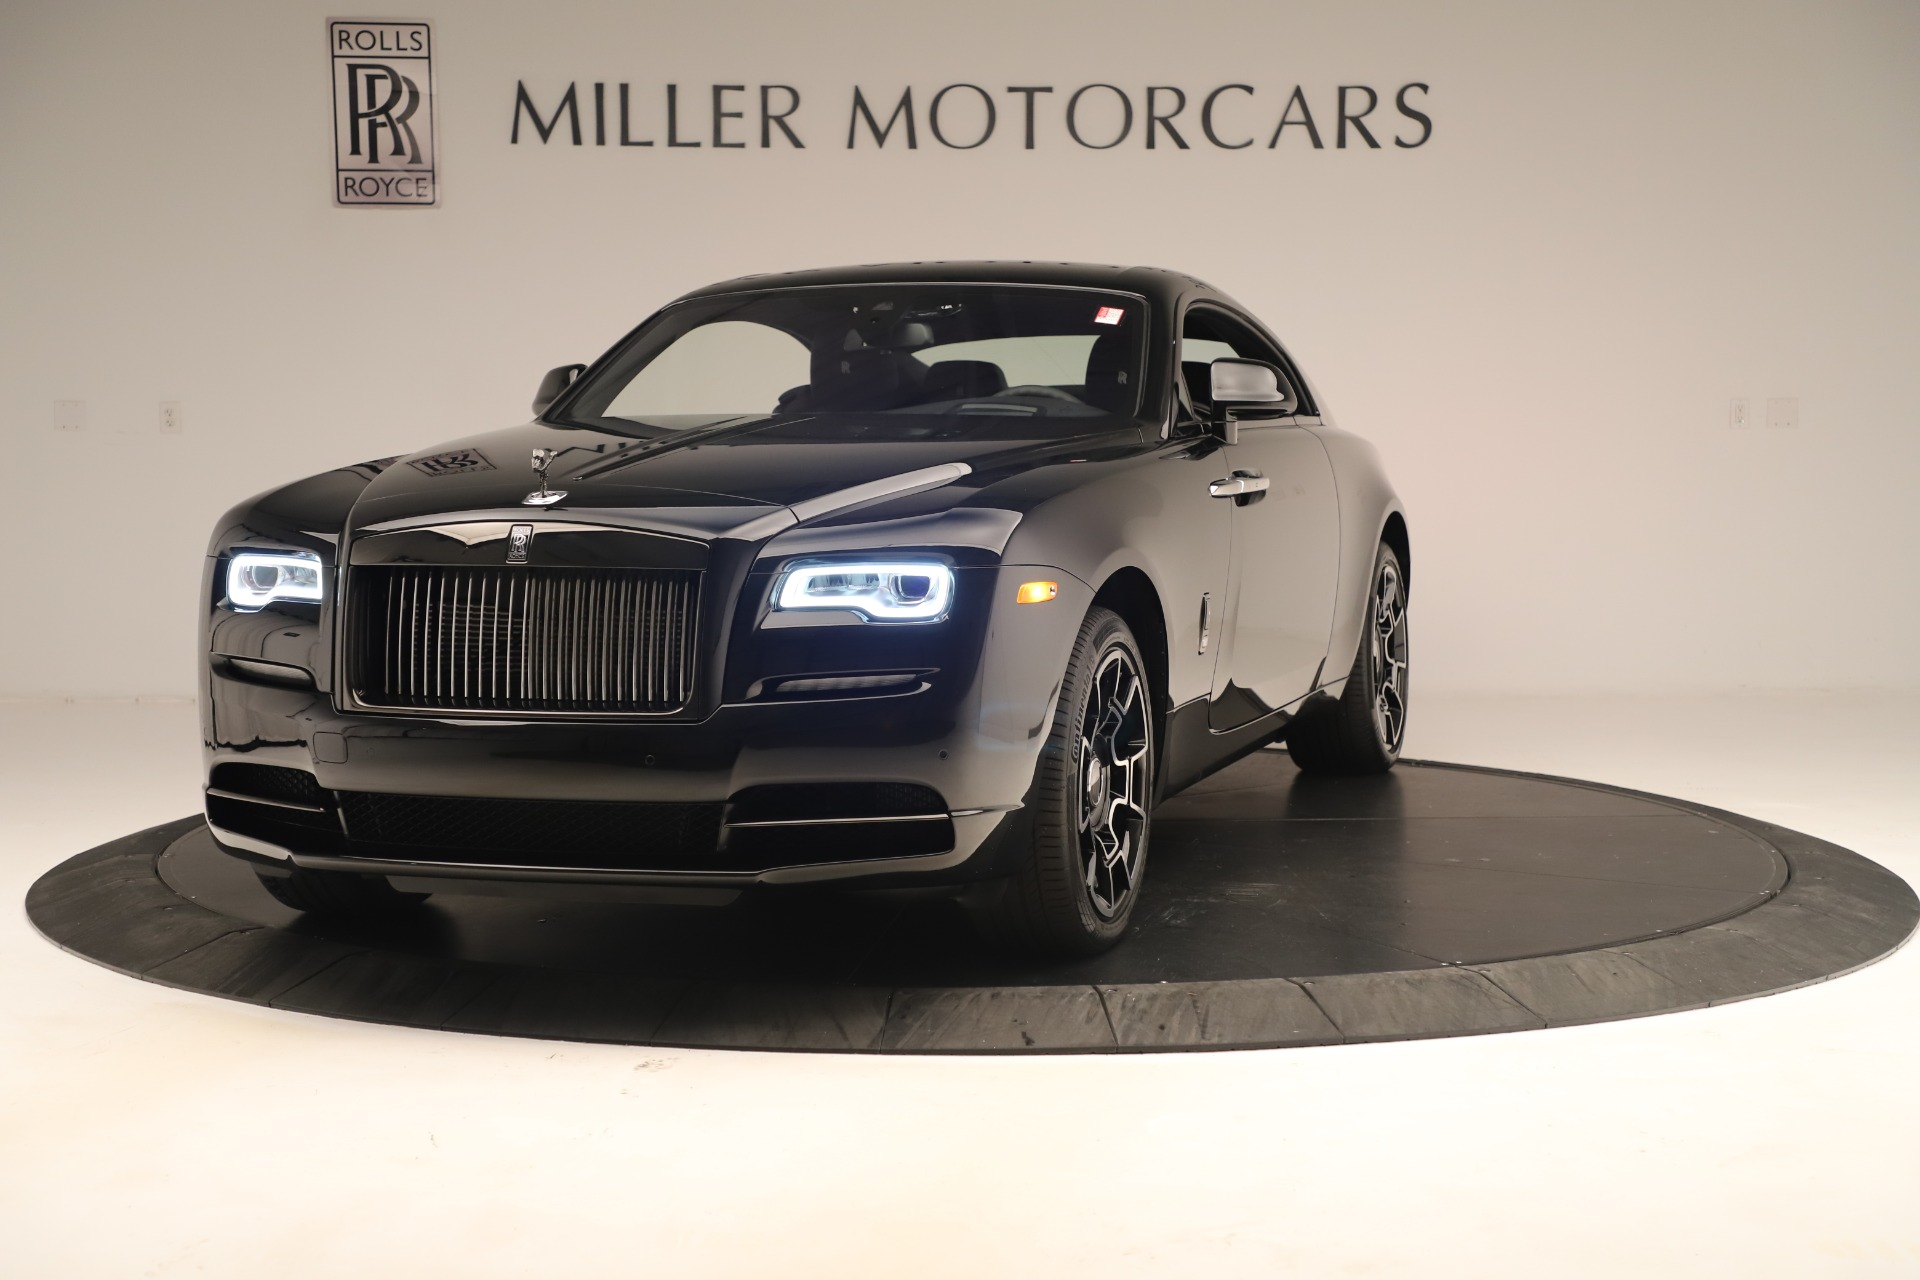 New 2020 Rolls-Royce Wraith Black Badge for sale Sold at Rolls-Royce Motor Cars Greenwich in Greenwich CT 06830 1